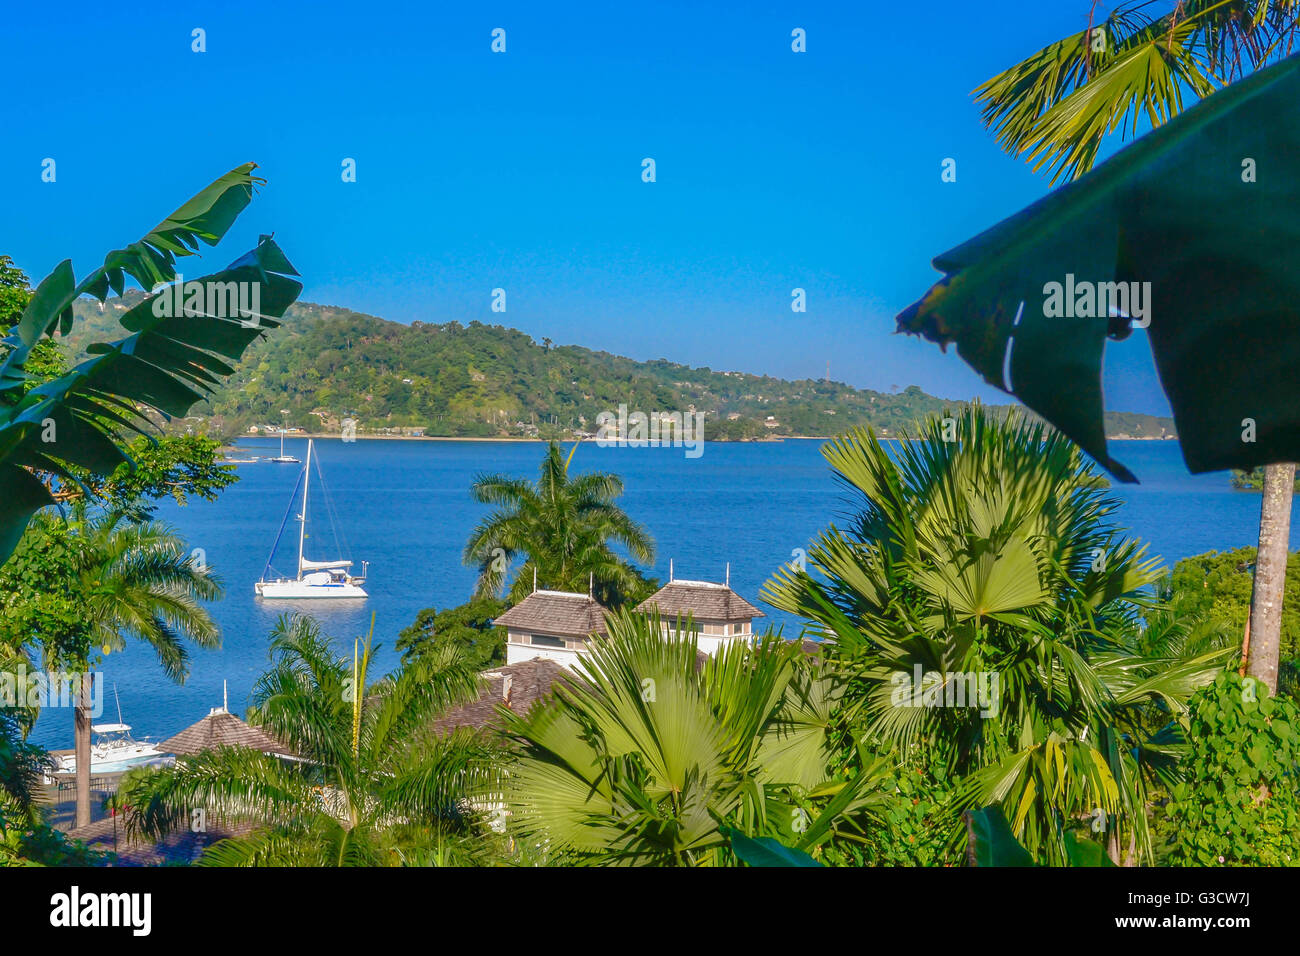 JAMAICA NATURE AND LANDSCAPE - Stock Image